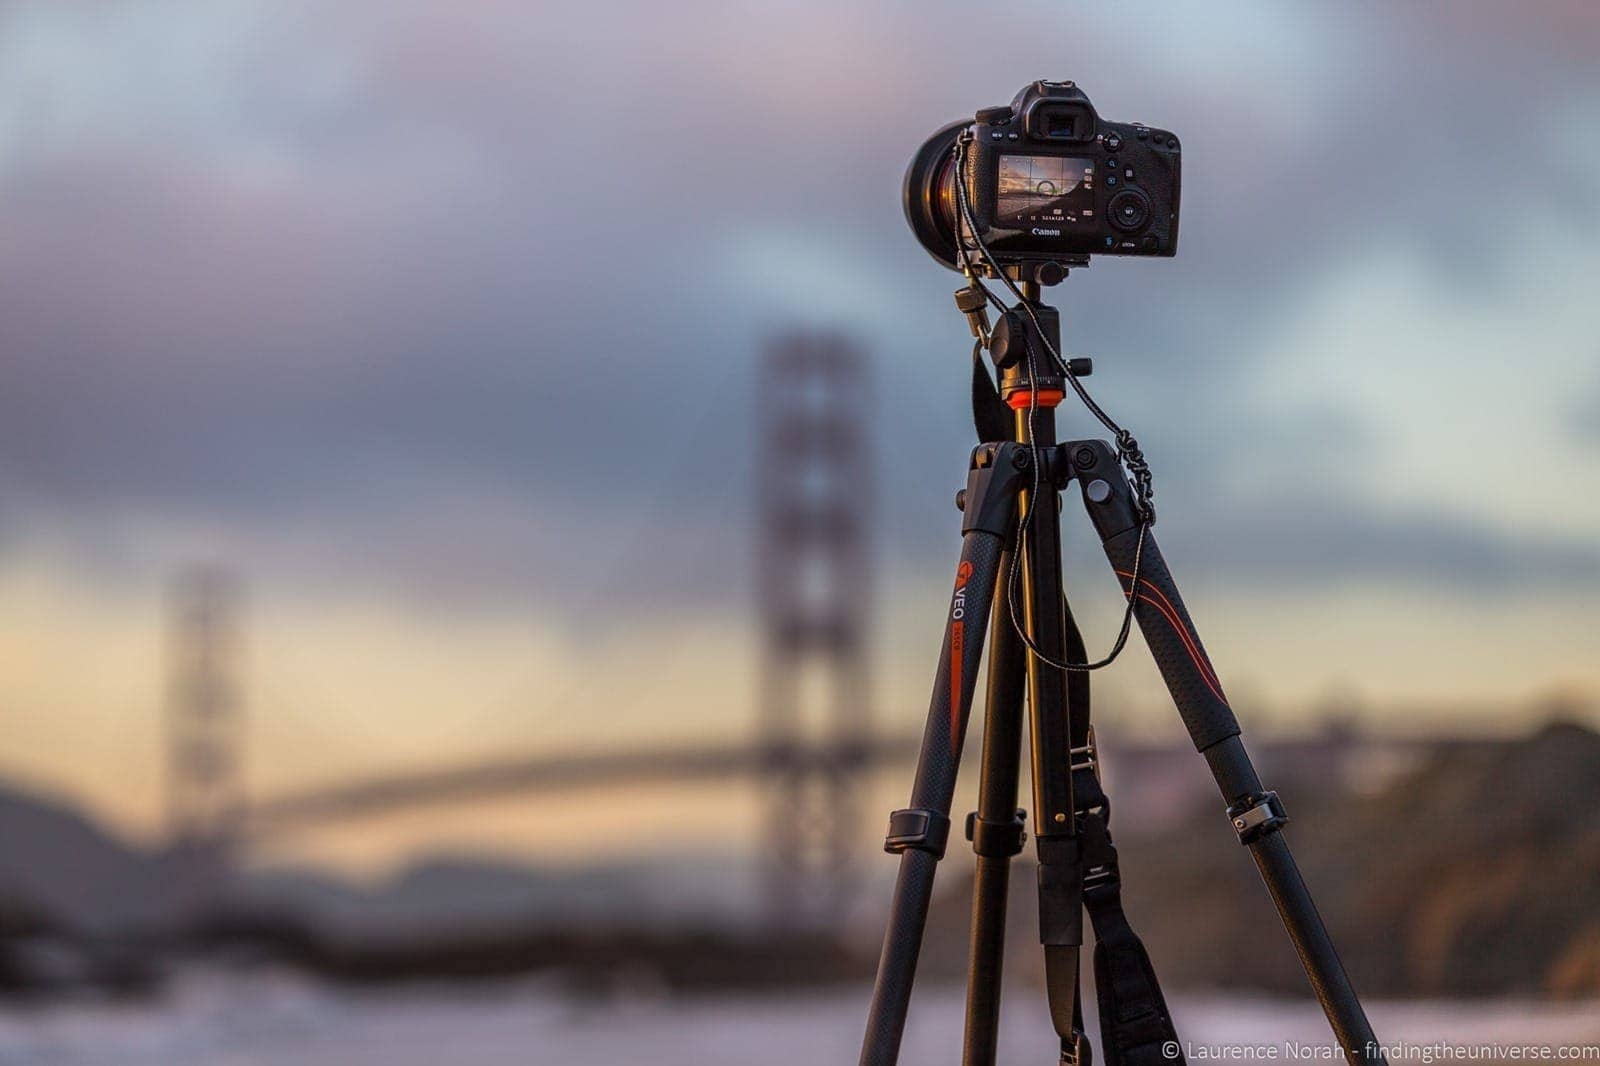 How to Become a Professional Photographer - Study Photography - How to do Photography